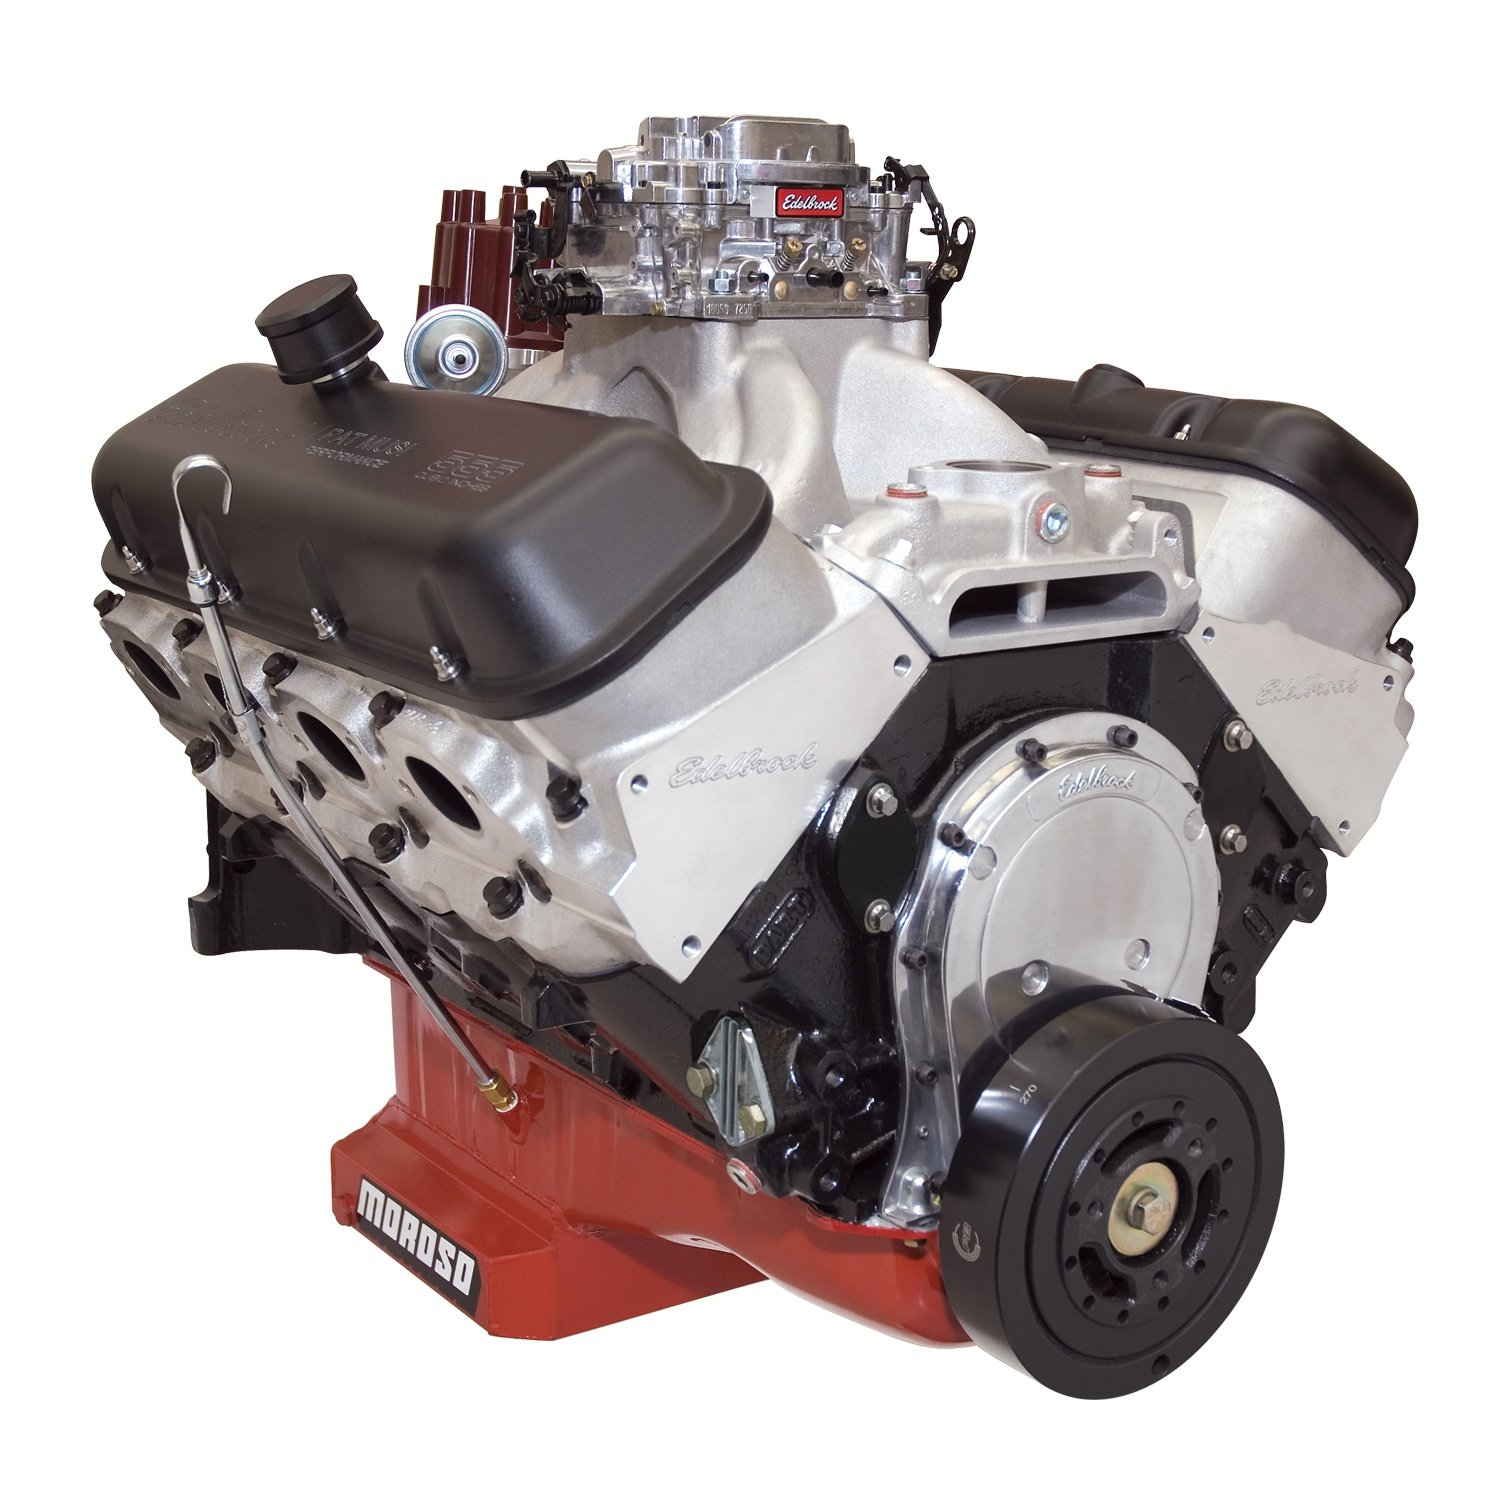 Edelbrock 49550 Edelbrock/Musi 555 Crate Engine Incl. Victor 454-R Jr. Manifold/RPM Xtreme Heads/Alum. Valve Covers/Roller Rocker Arms/Hyd. Roller Lifter Cam Water Pump Not Incl. Edelbrock/Musi 555 Crate Engine